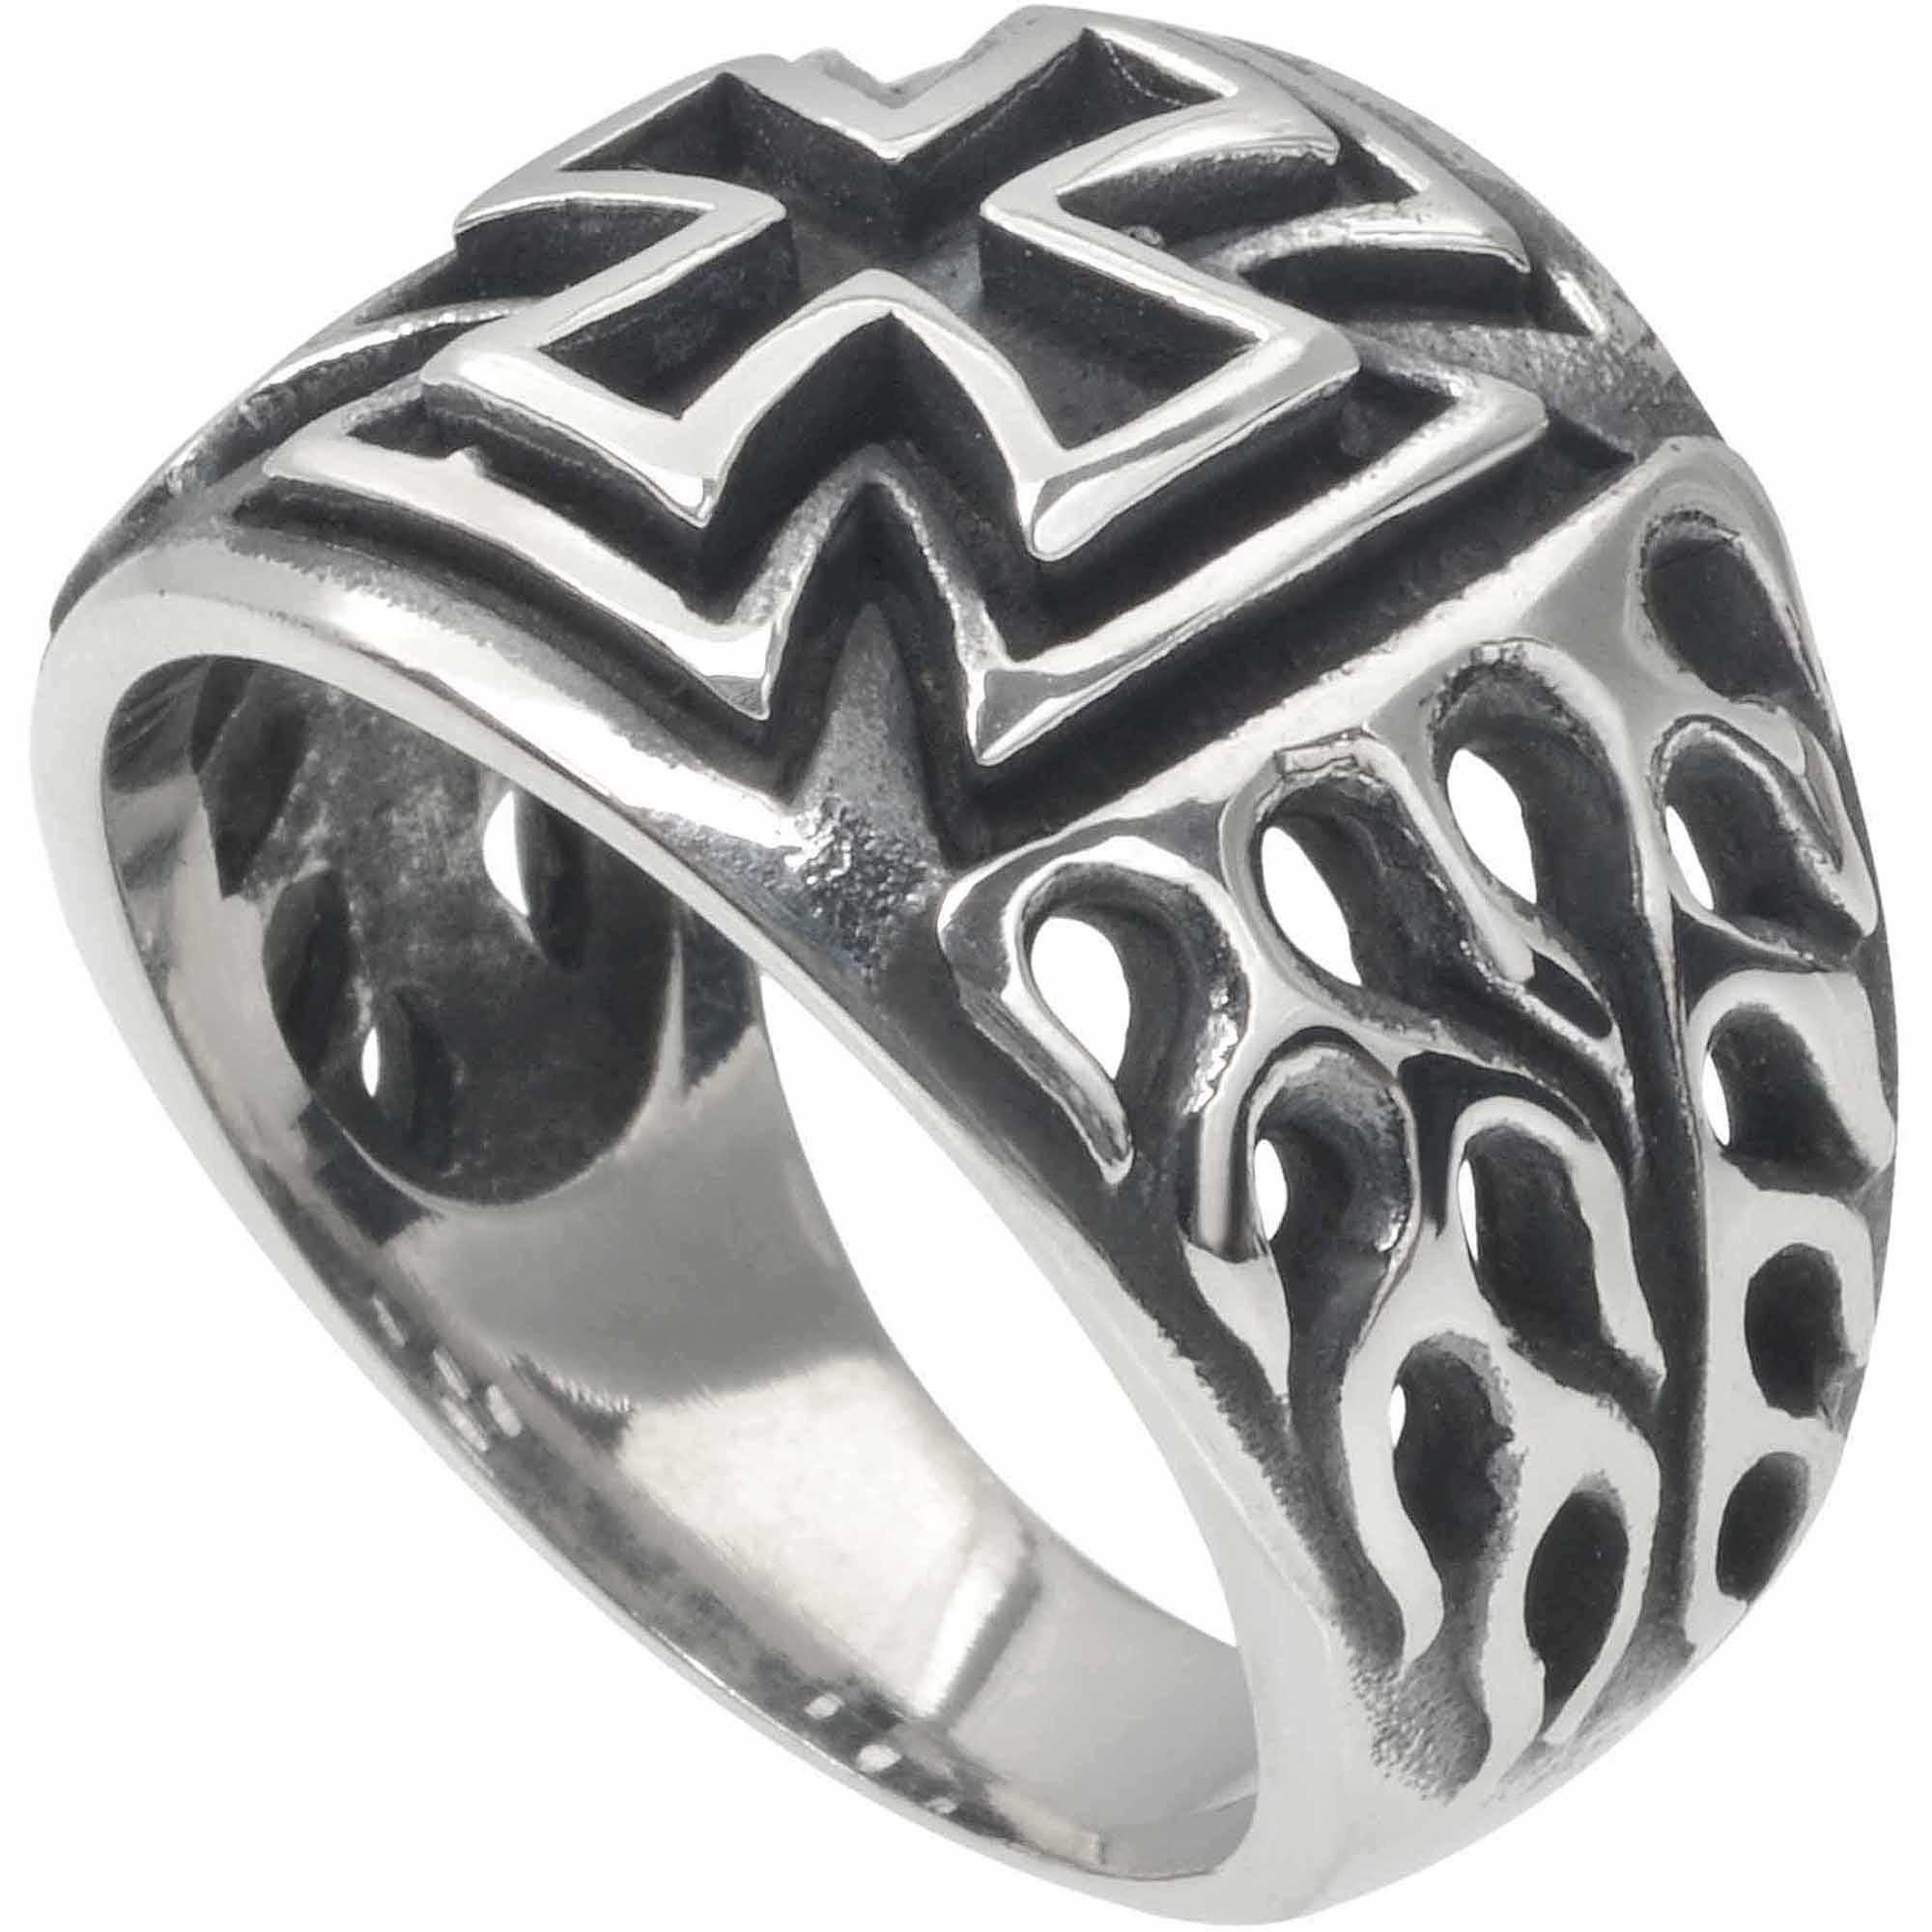 Daxx Men's Stainless Steel Iron Cross Flame Fashion Ring